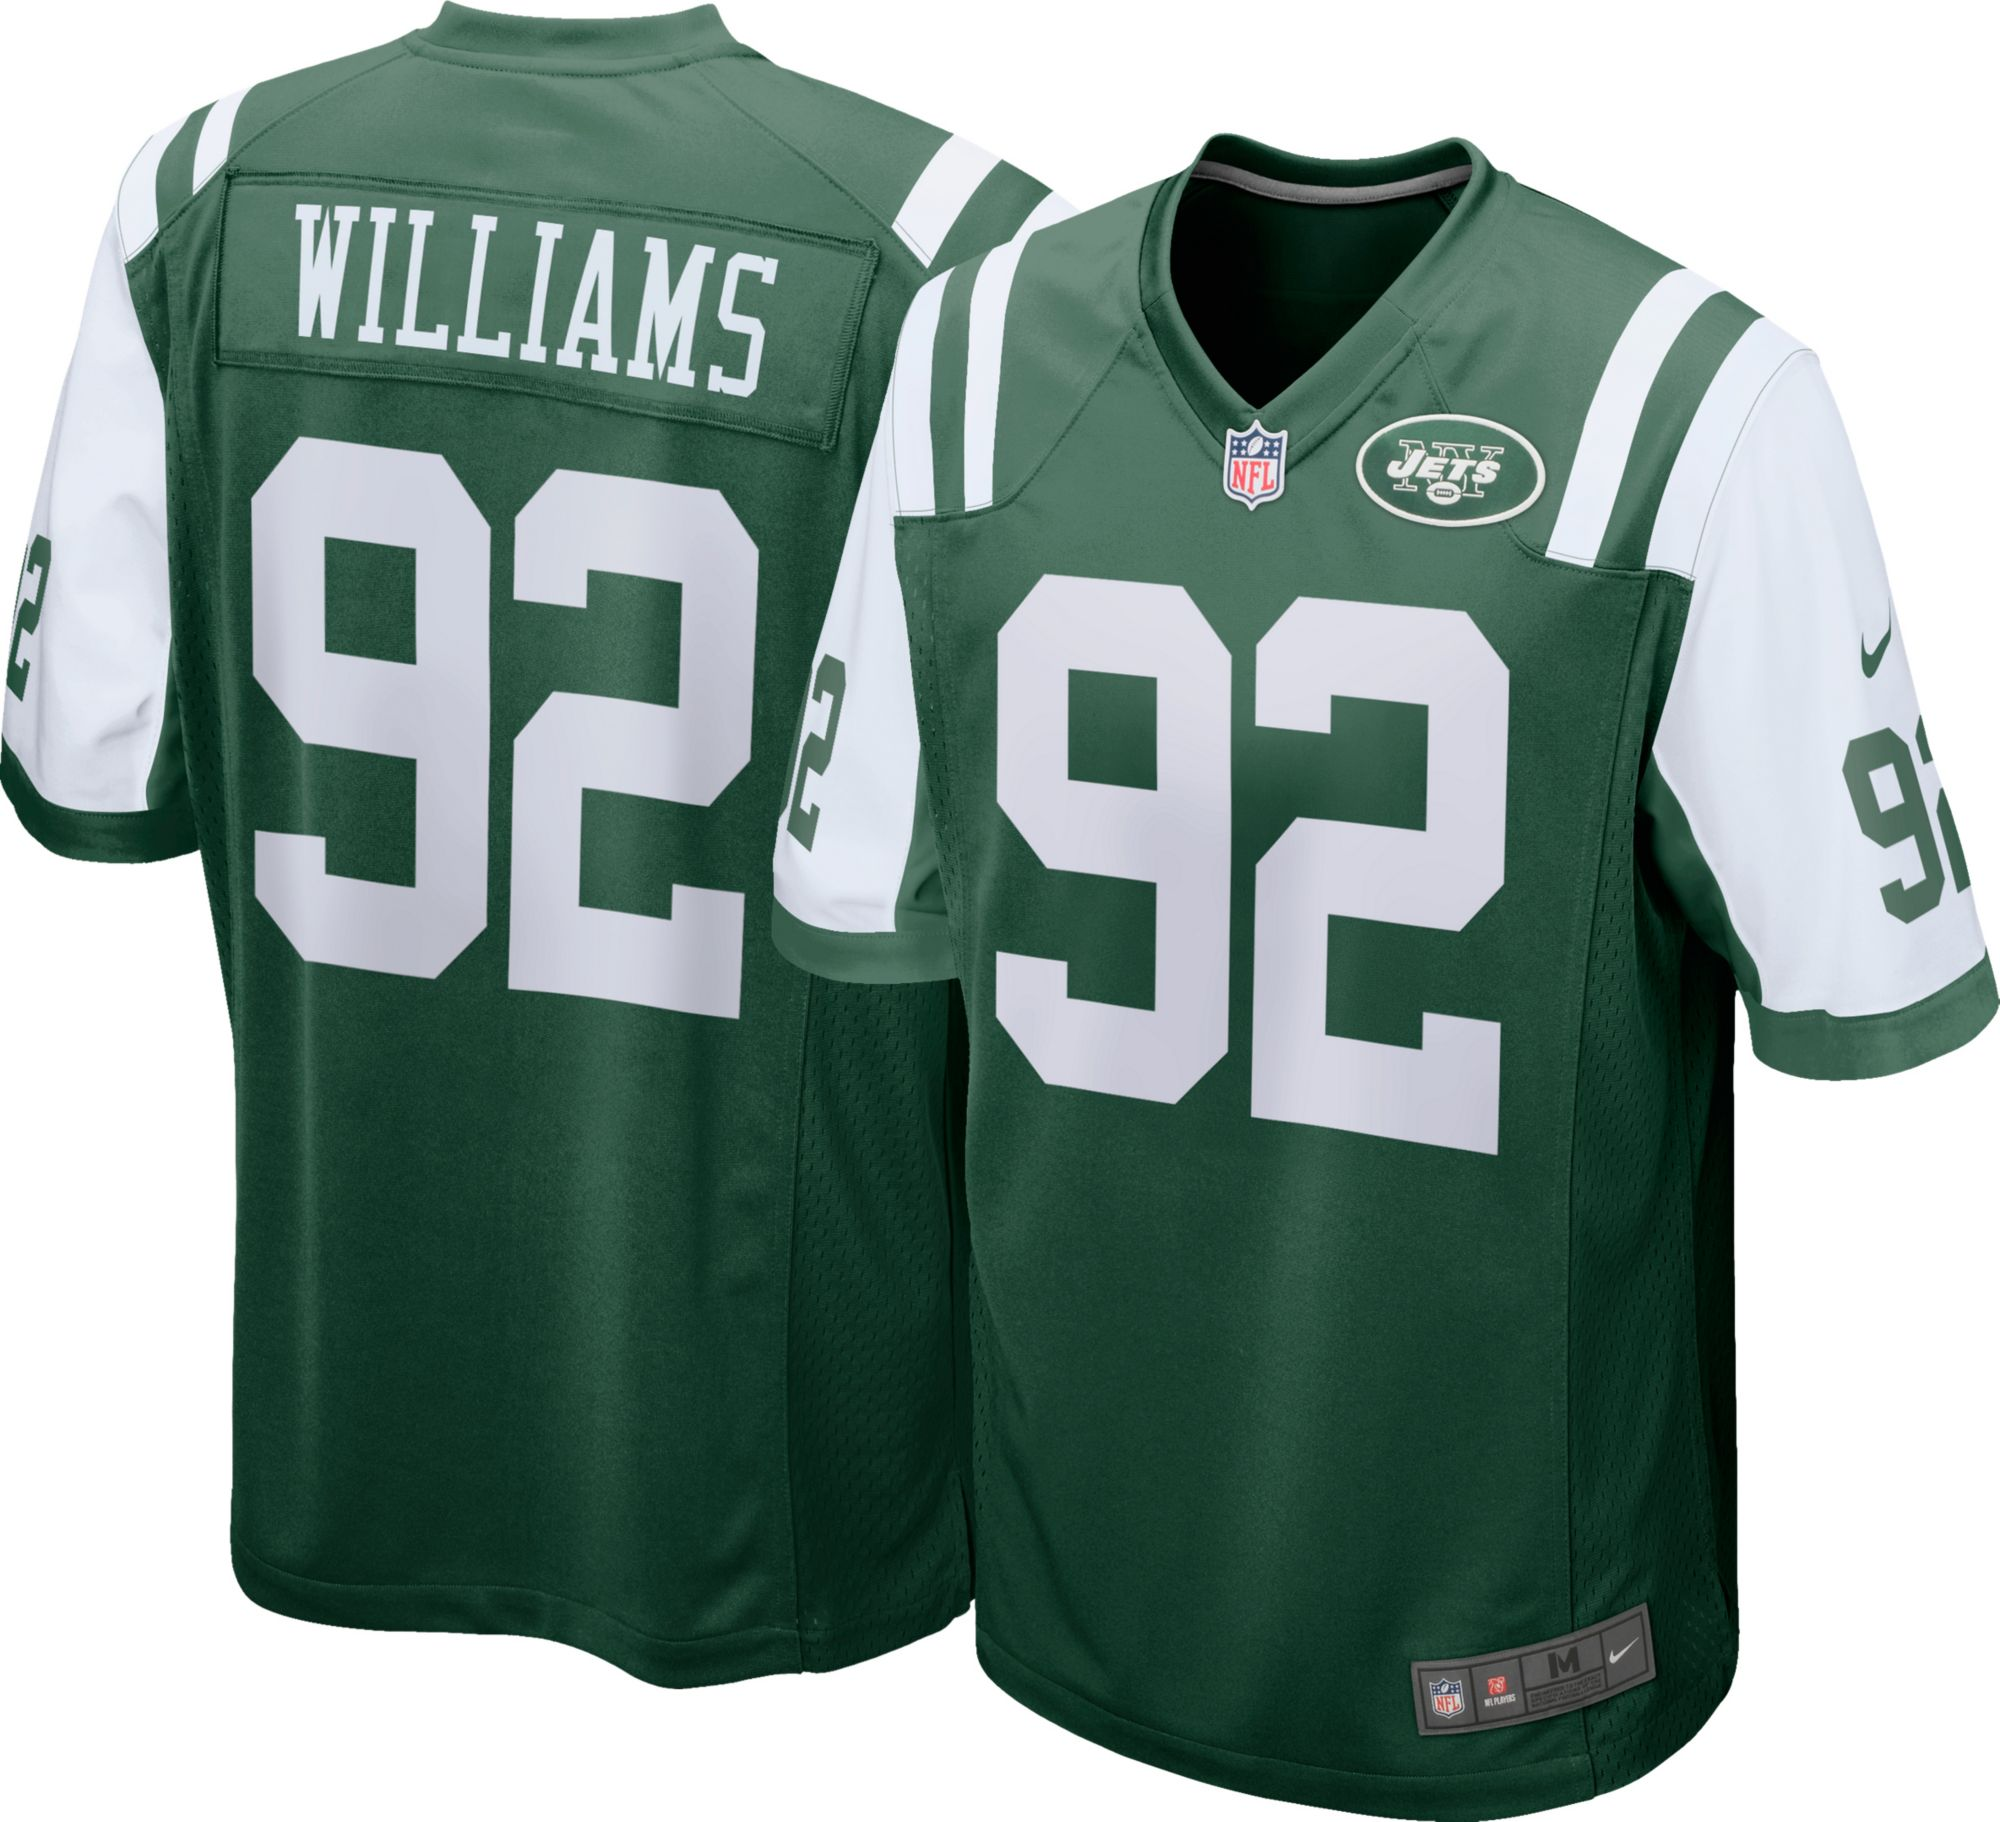 leonard williams jersey